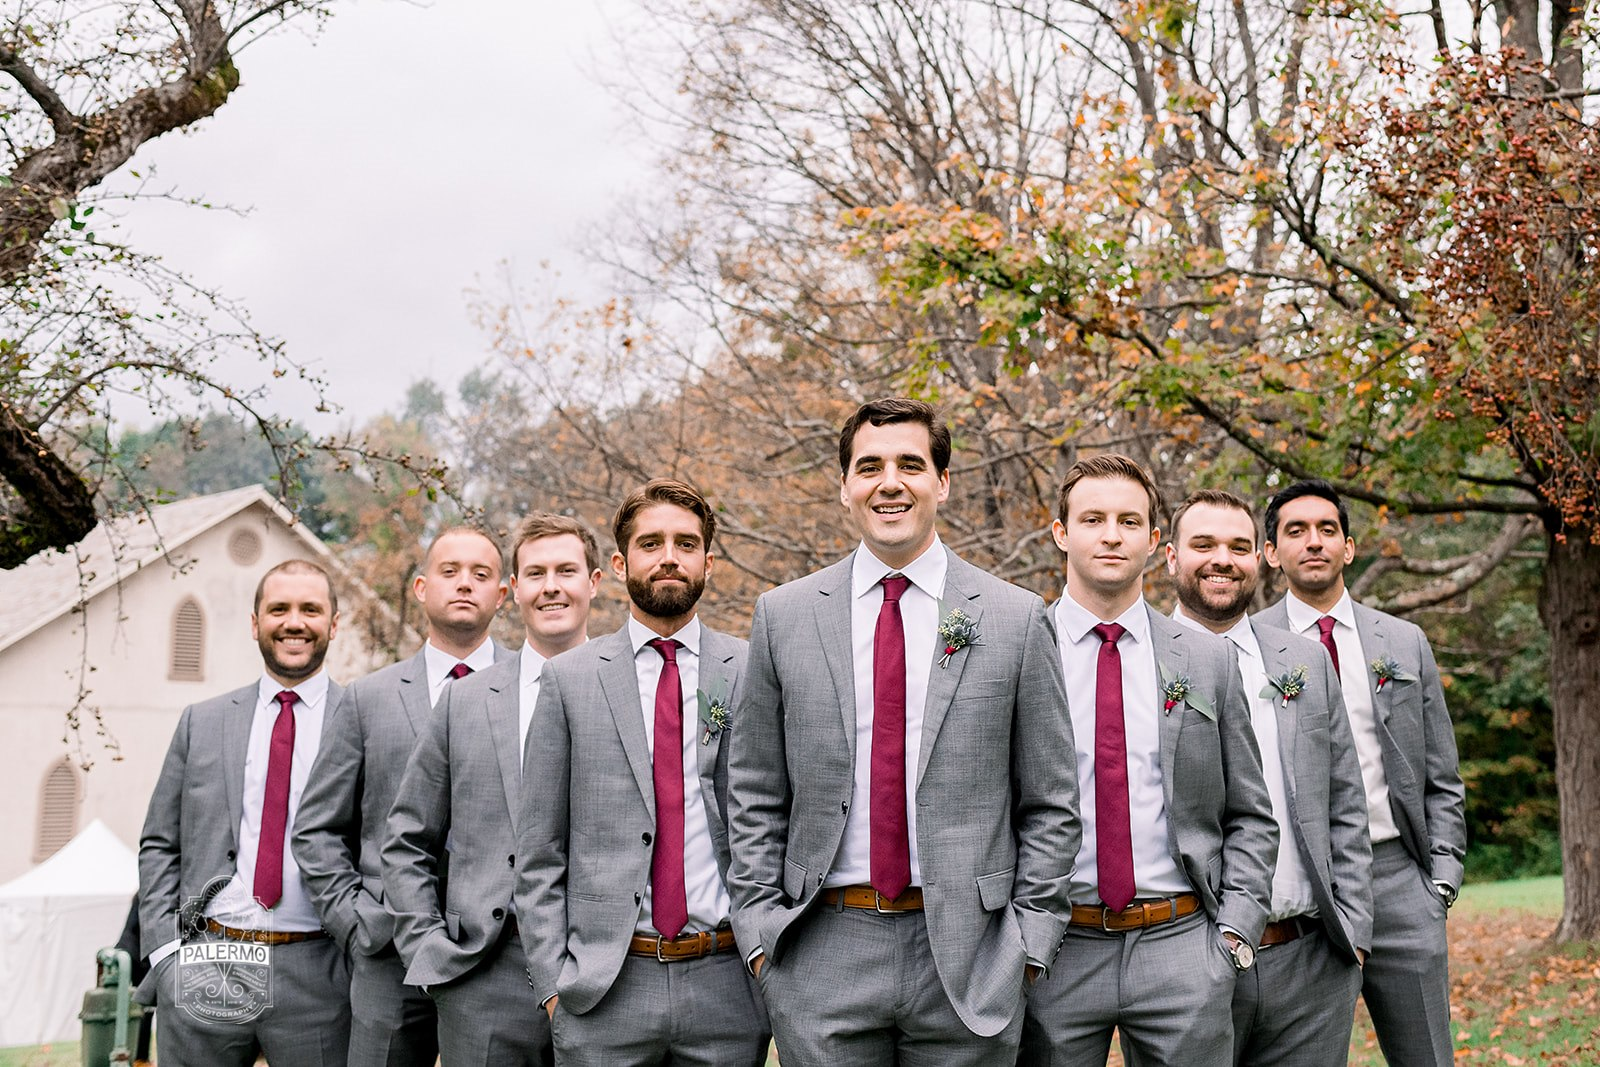 Groom and groomsmen pose for wedding photos in gray suits for fall barn wedding in Pittsburgh, PA planned by Exhale Events. Find more wedding inspiration at exhale-events.com!